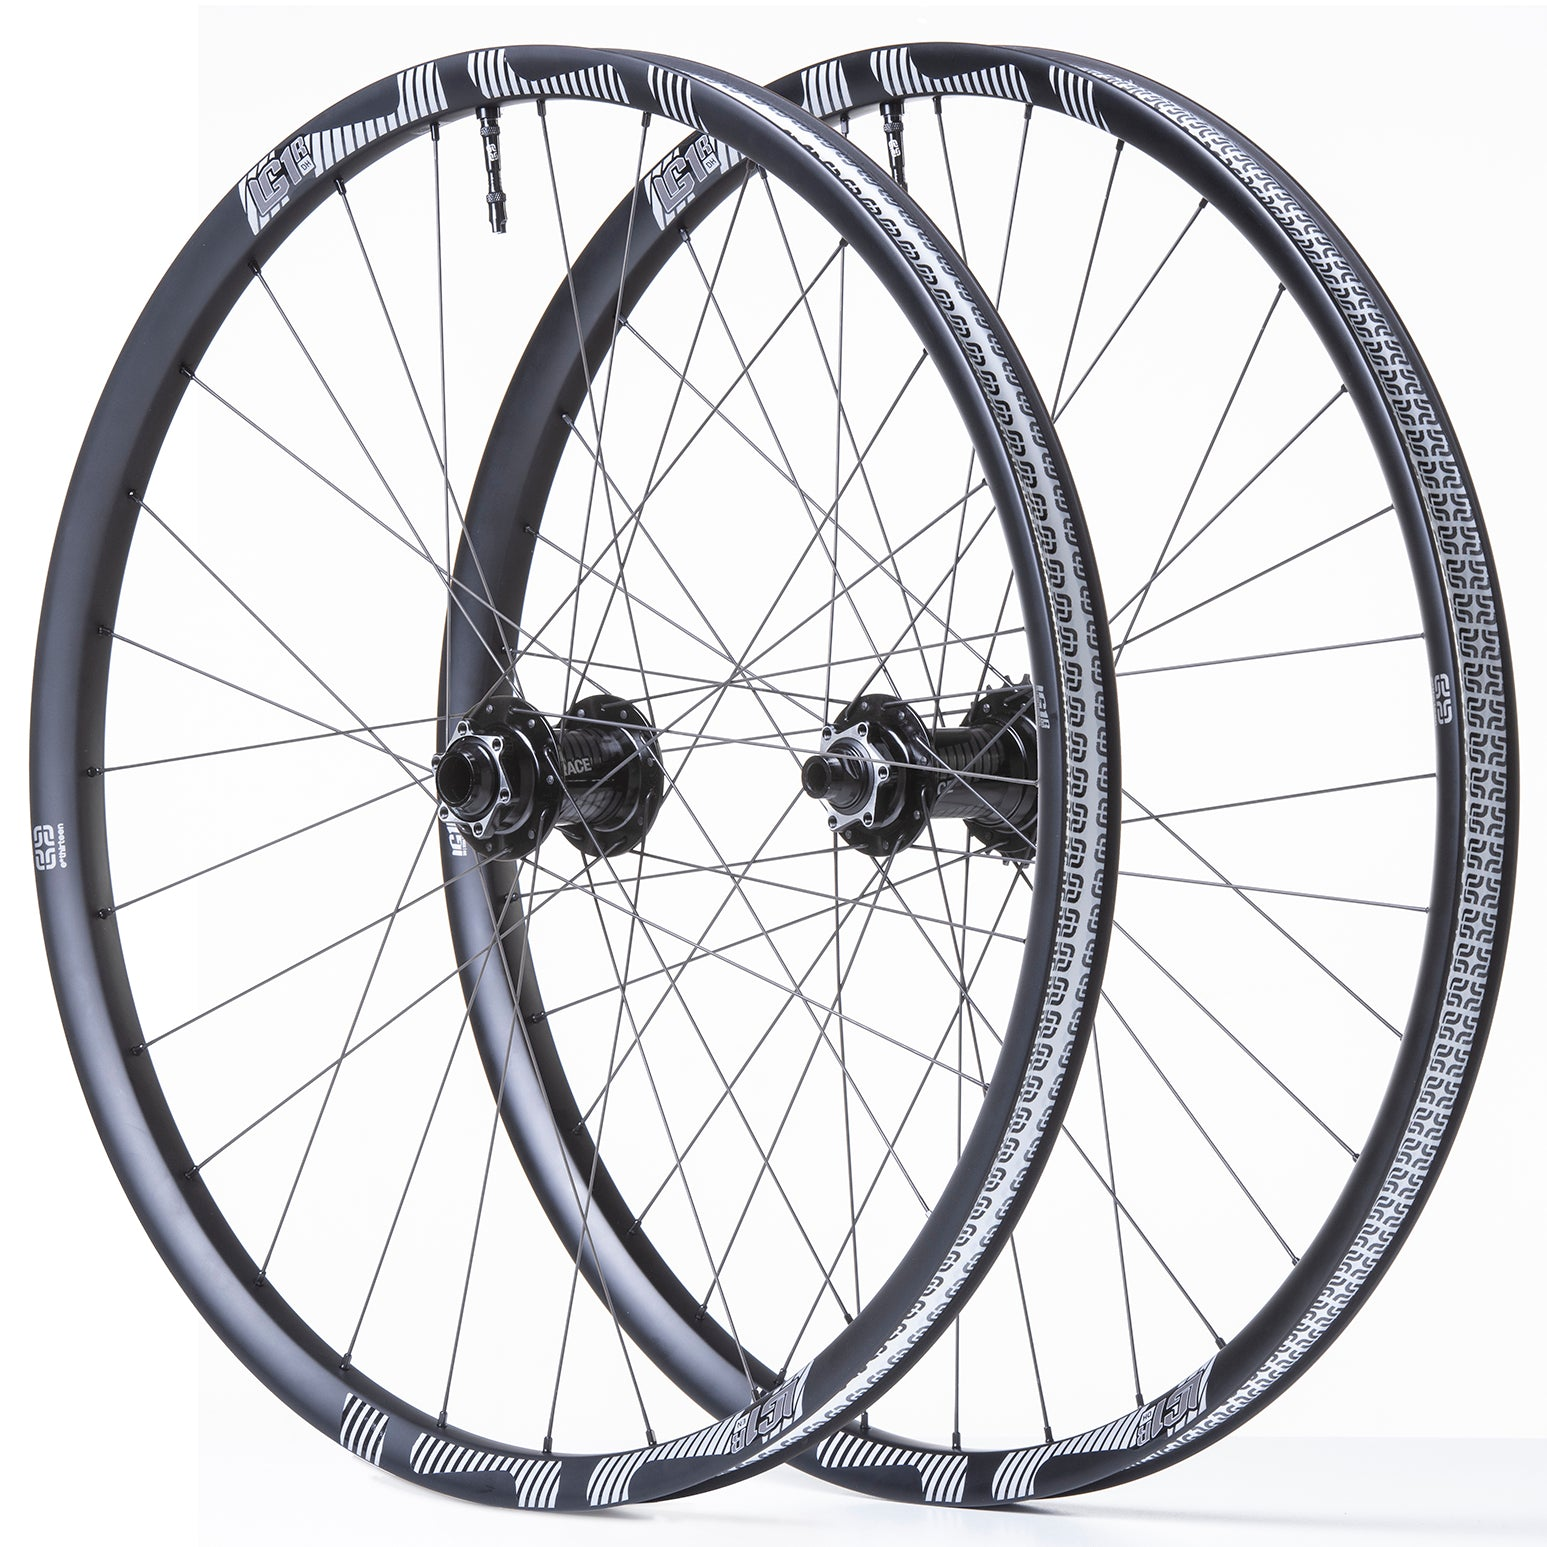 LG1 Race Carbon Downhill Wheels